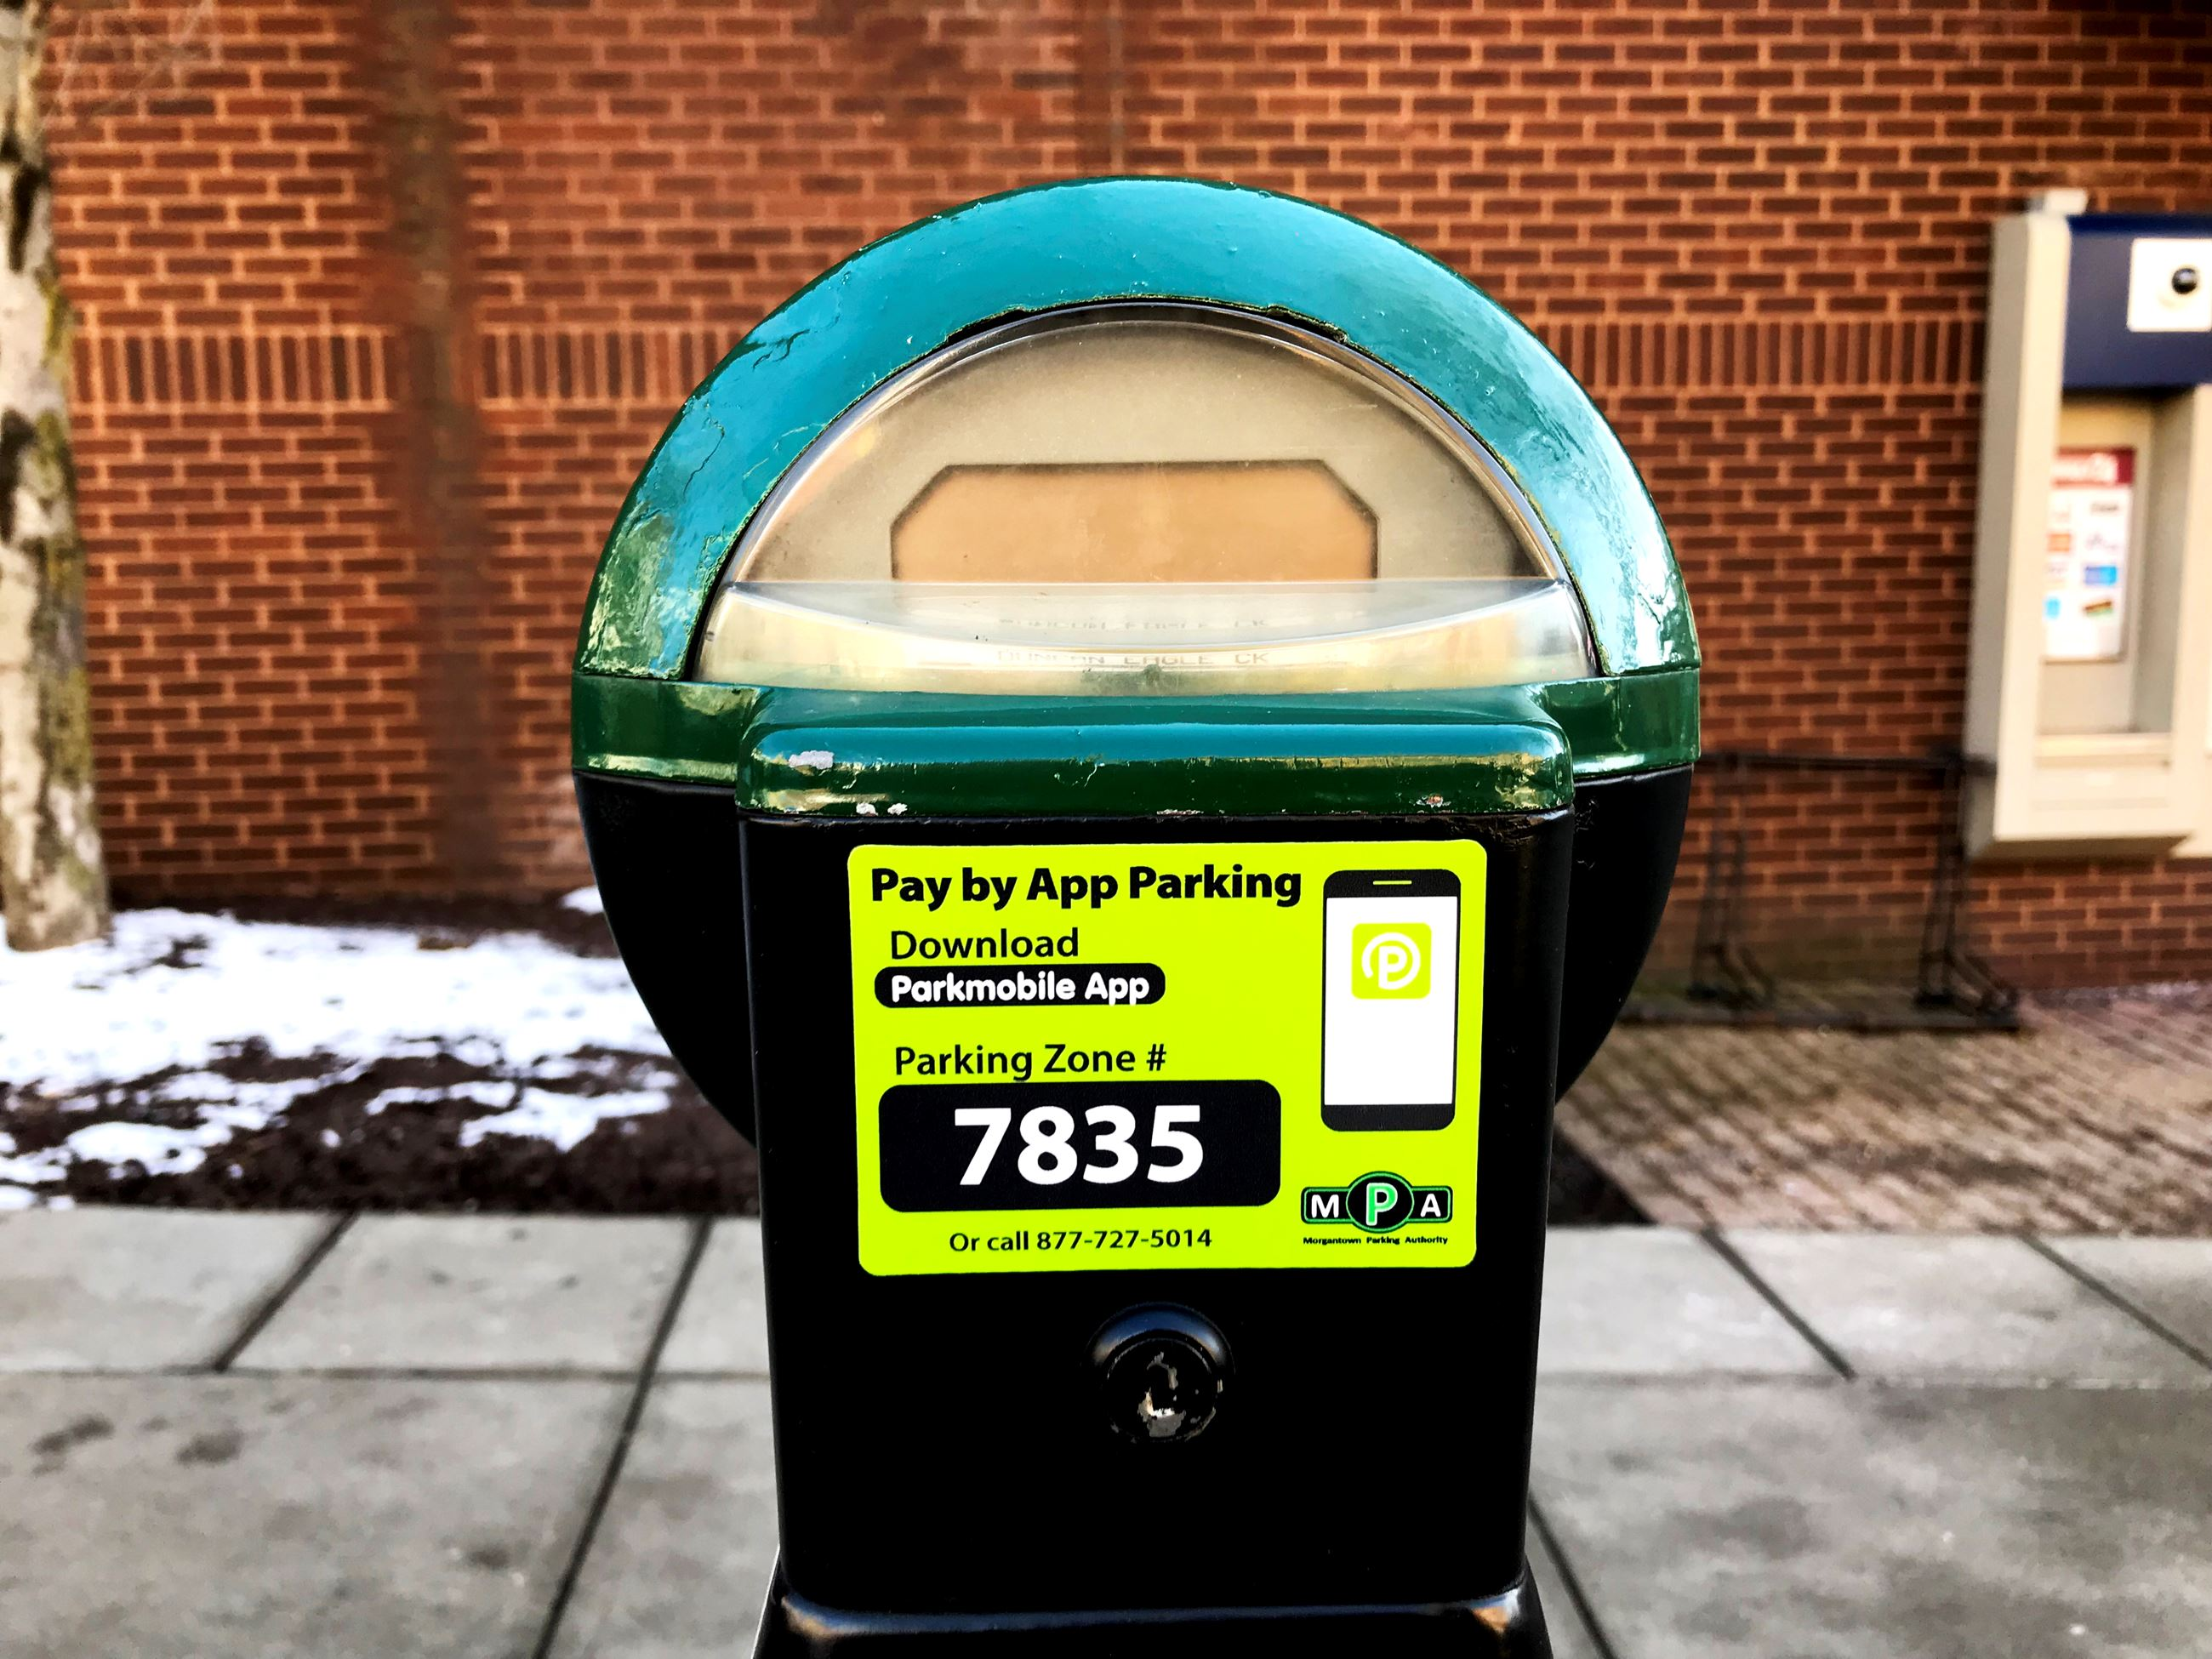 The parking meter features a new sticker from Morgantown Parking Authority partner, Parkmobile. The